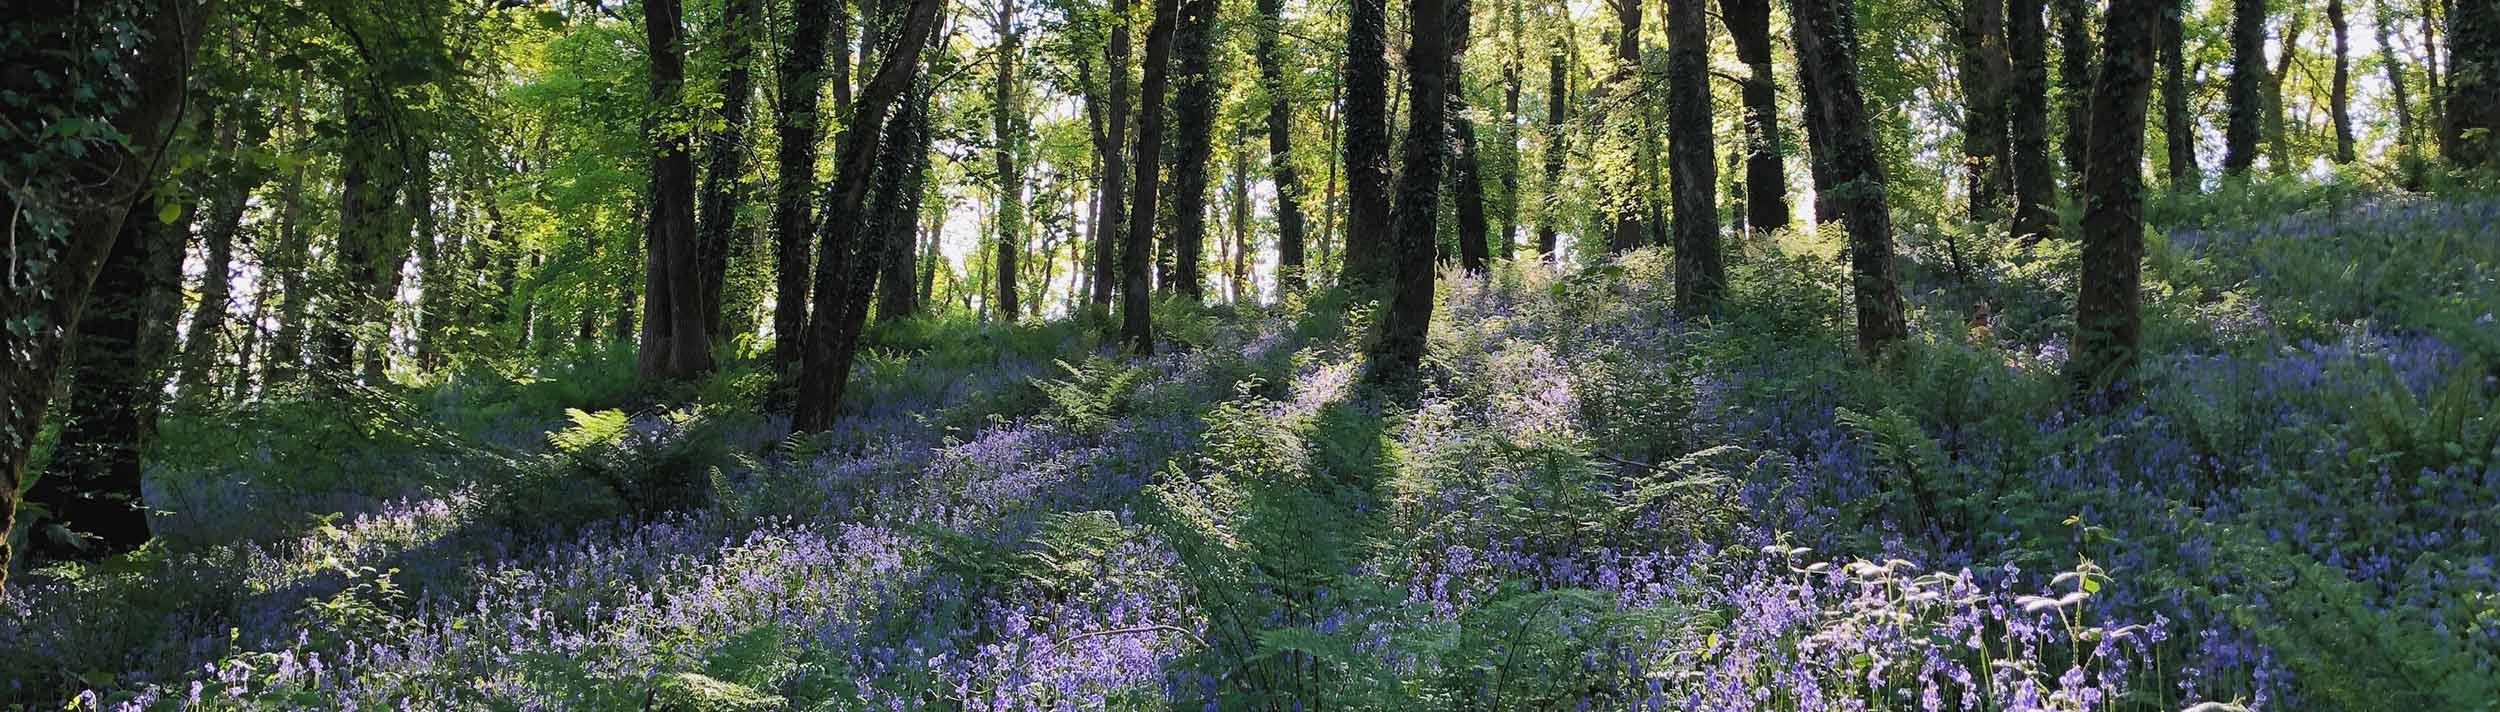 Explore the bluebell woods at Alder Vineyard